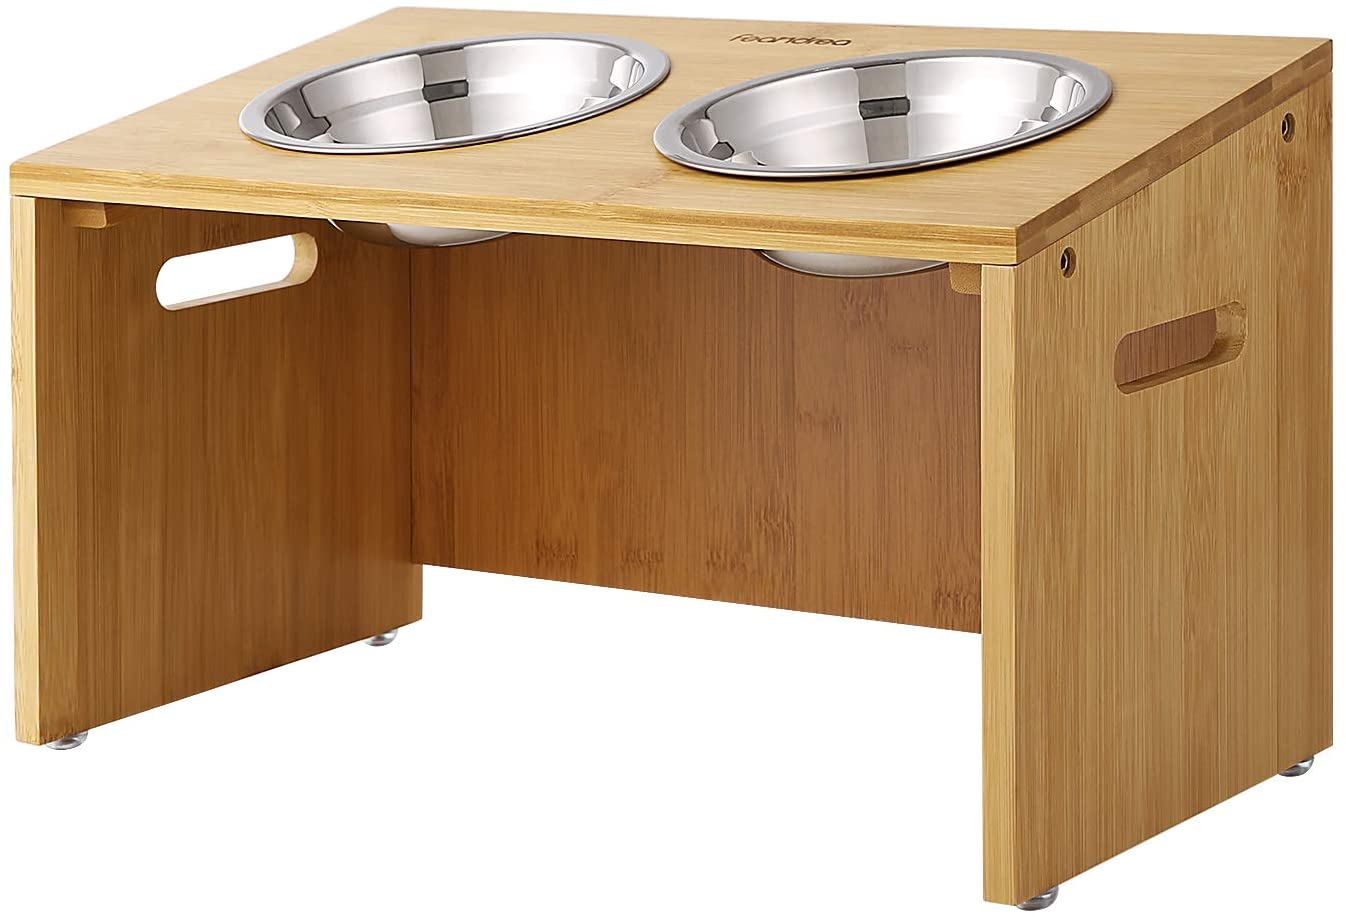 FEANDREA Raised Bowls, Bamboo Elevated Dog Bowl Stand, Anti-Slip Design, 15° Tilt Design, with 2 Removable Stainless Steel Bowls, 10.2 Inches, Natural UPRB02N